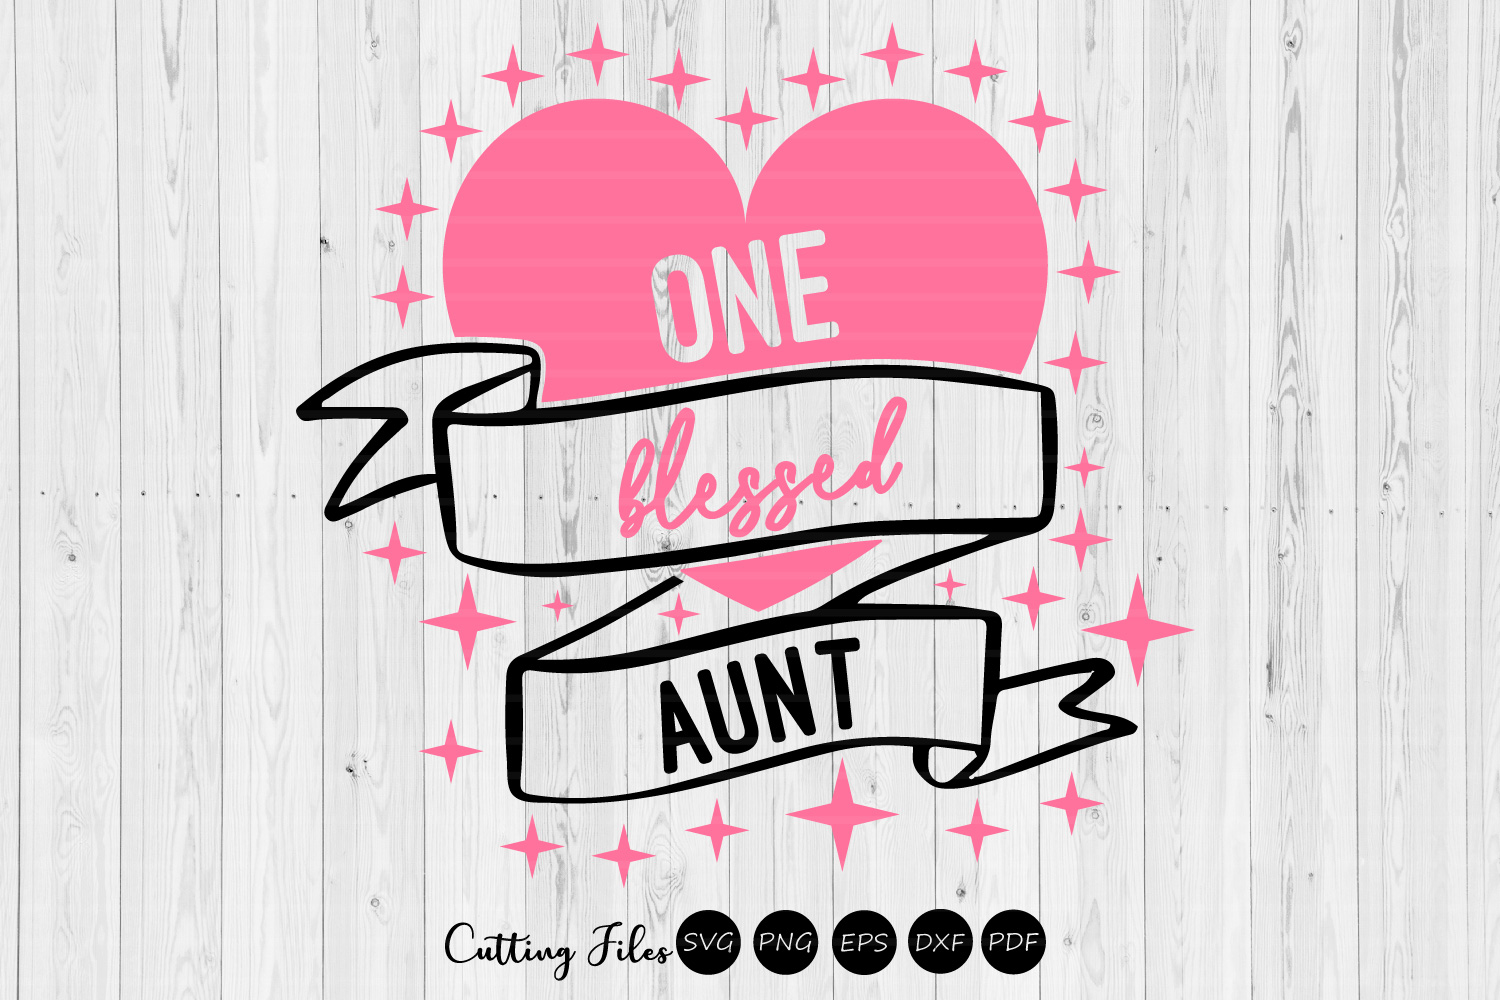 Download Free One Blessed Aunt Svg Cut File Graphic By Hd Art Workshop for Cricut Explore, Silhouette and other cutting machines.